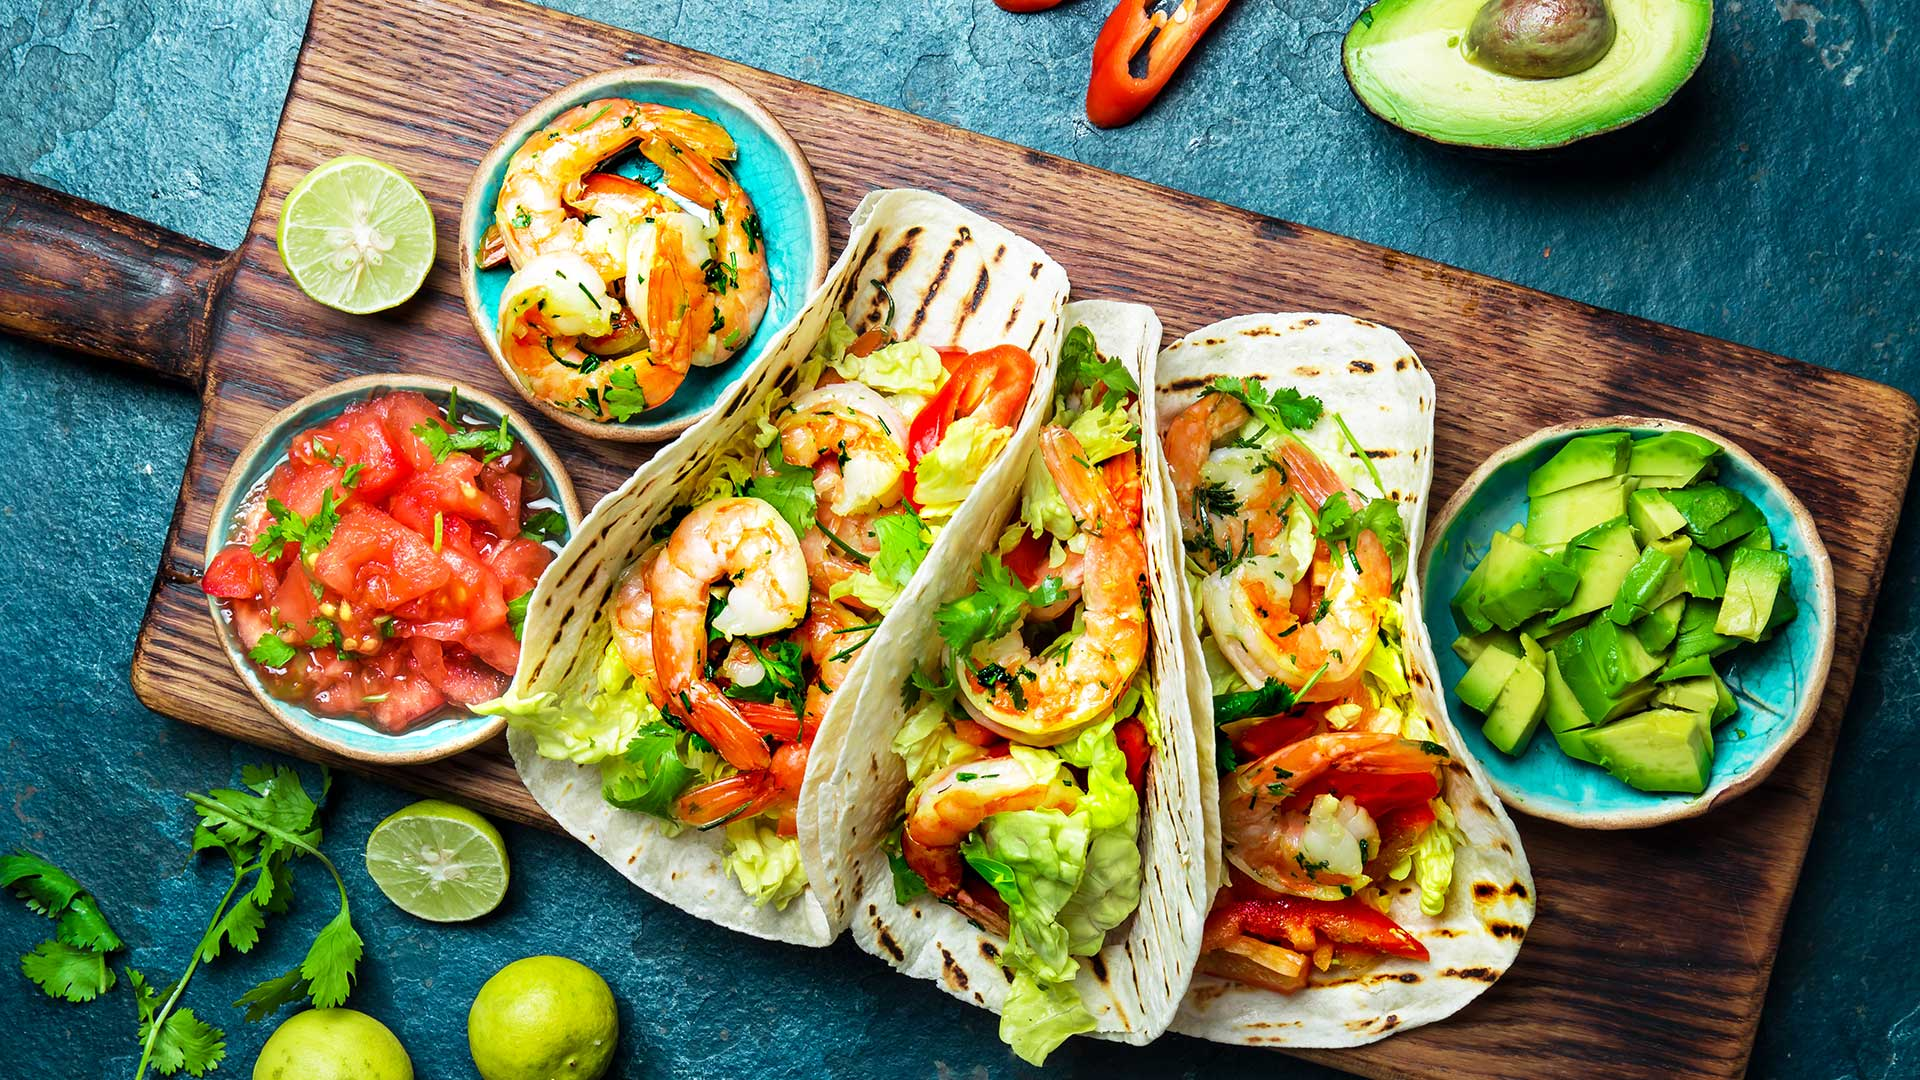 Visit California Cravings for authentic California-style Mexican food